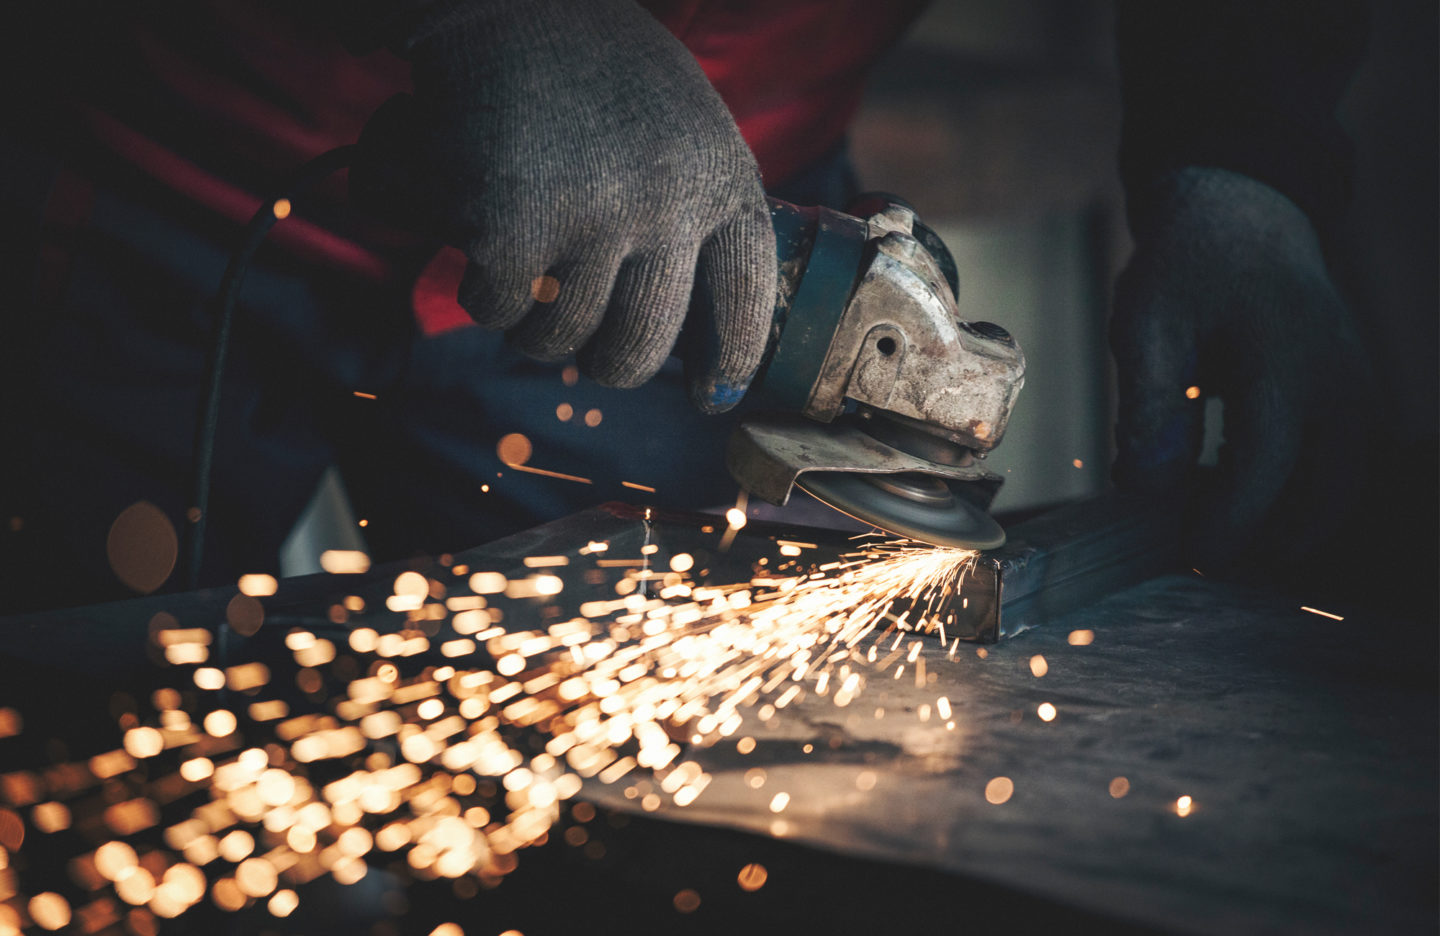 Worker grinding and welding metal with sparks flying